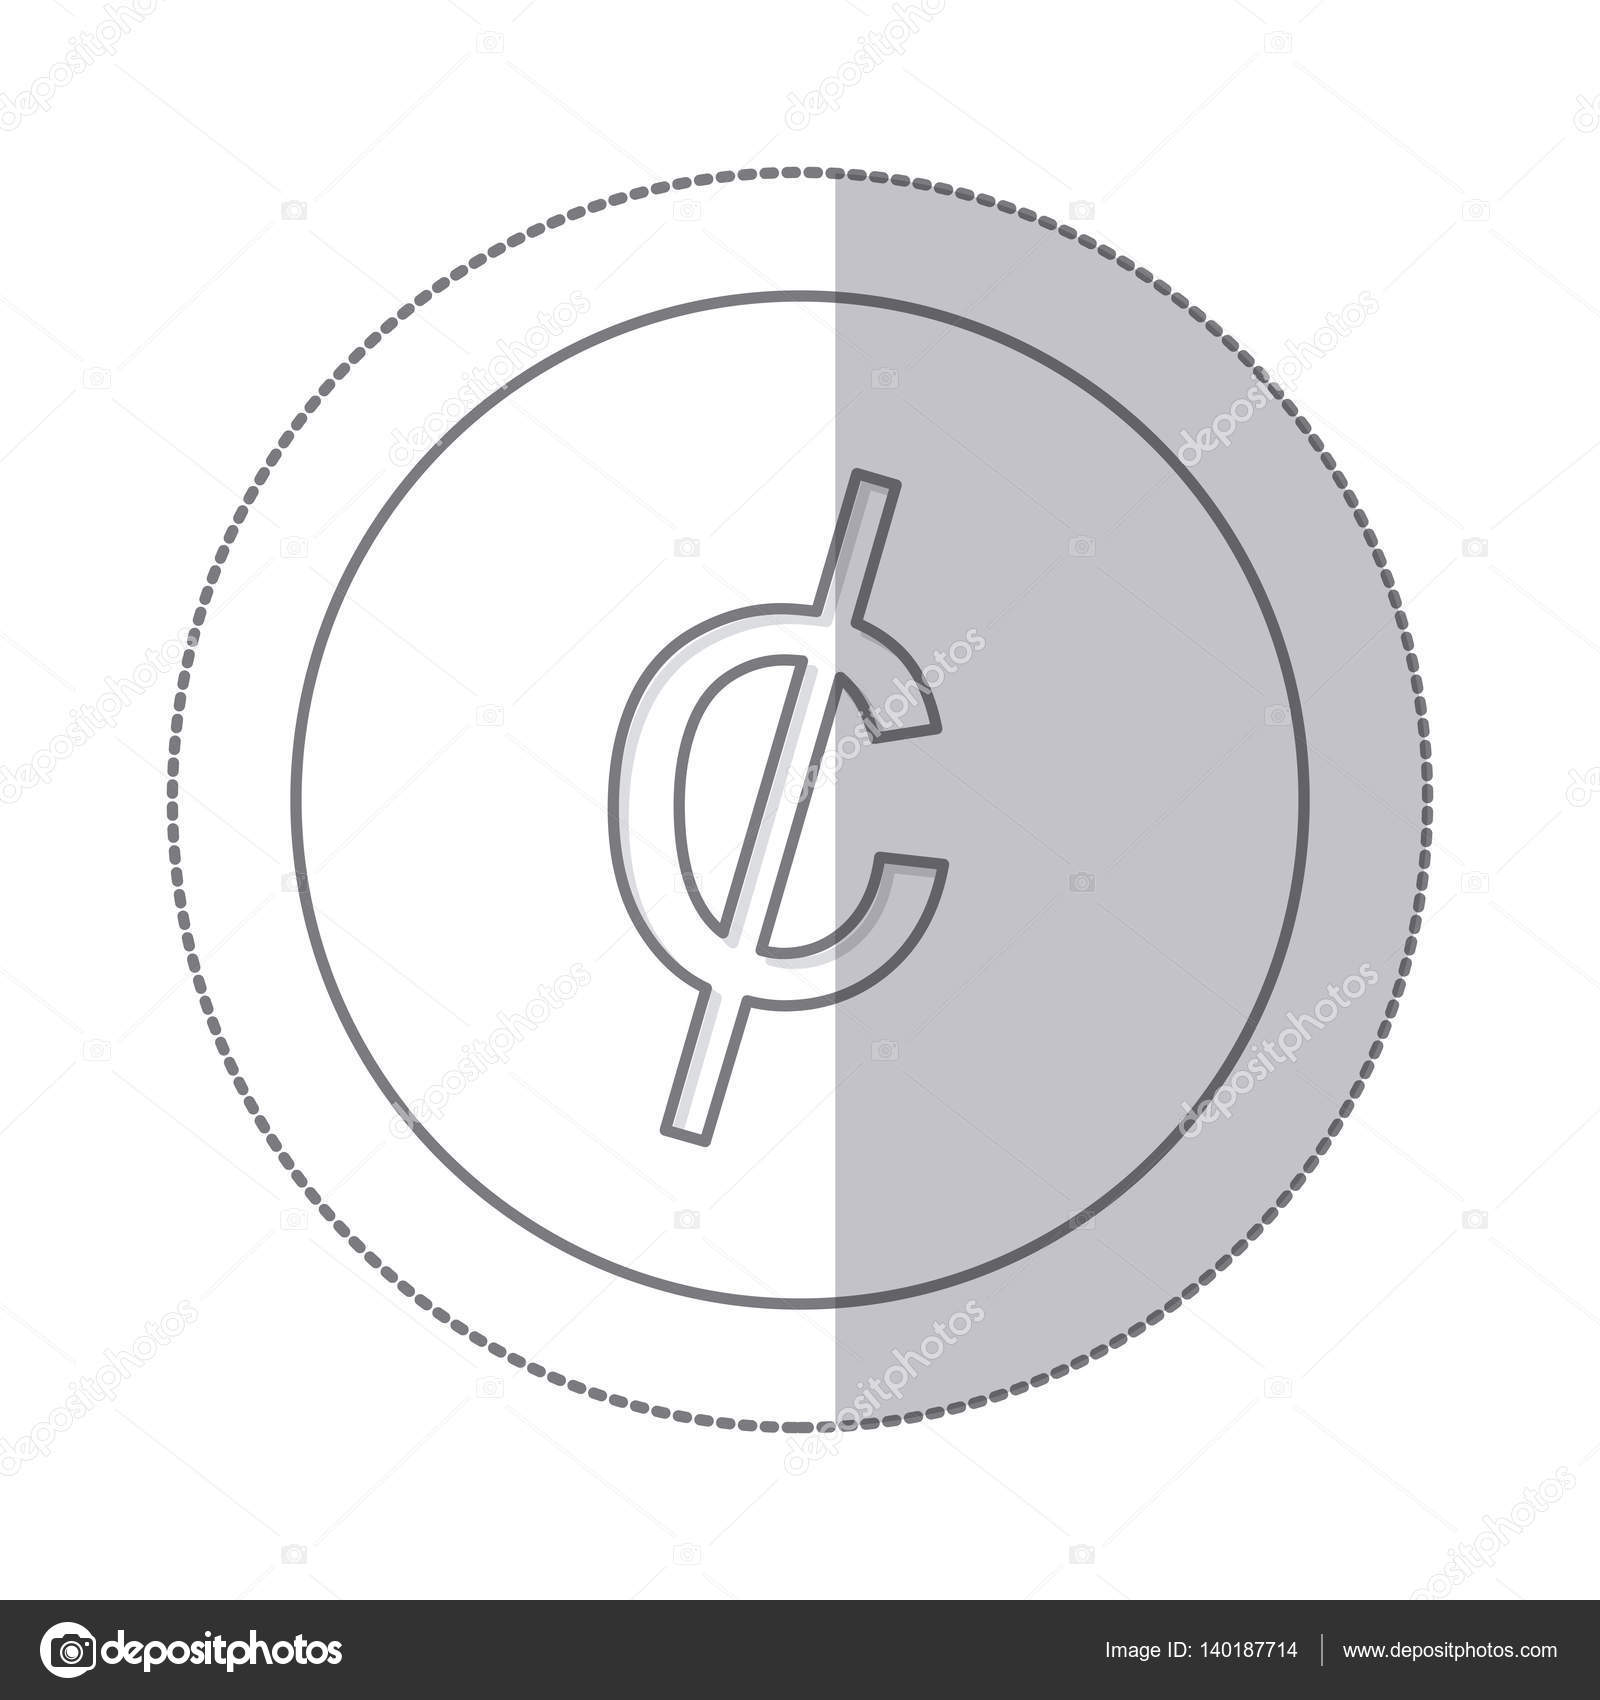 Middle Shadow Monochrome Circle With Currency Symbol Of Cent Stock